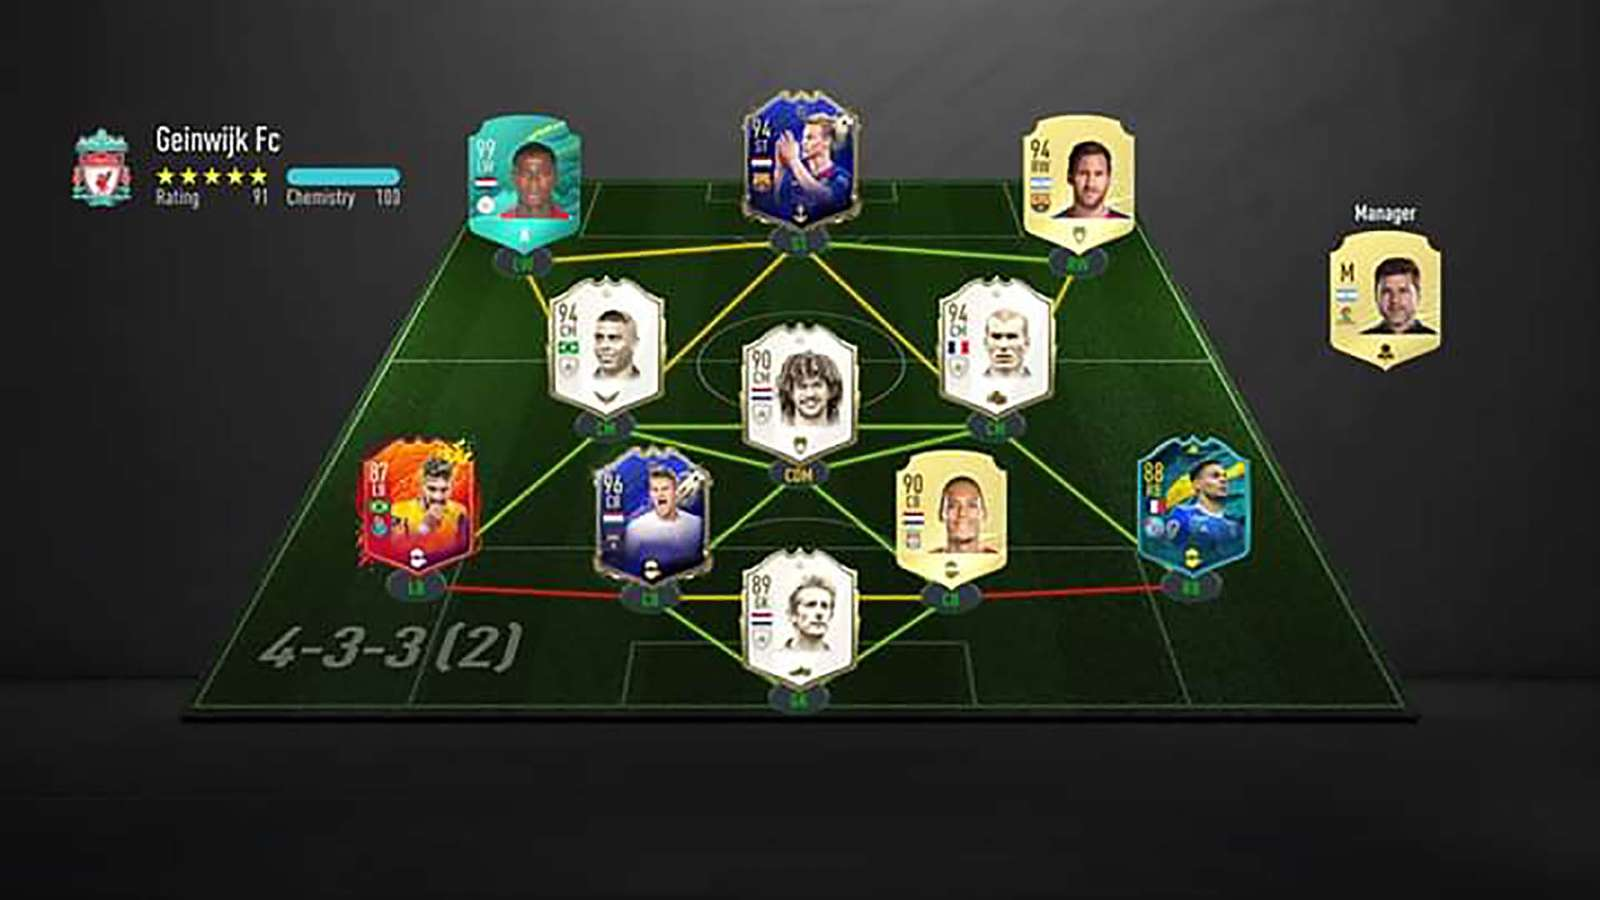 Promes pro player team